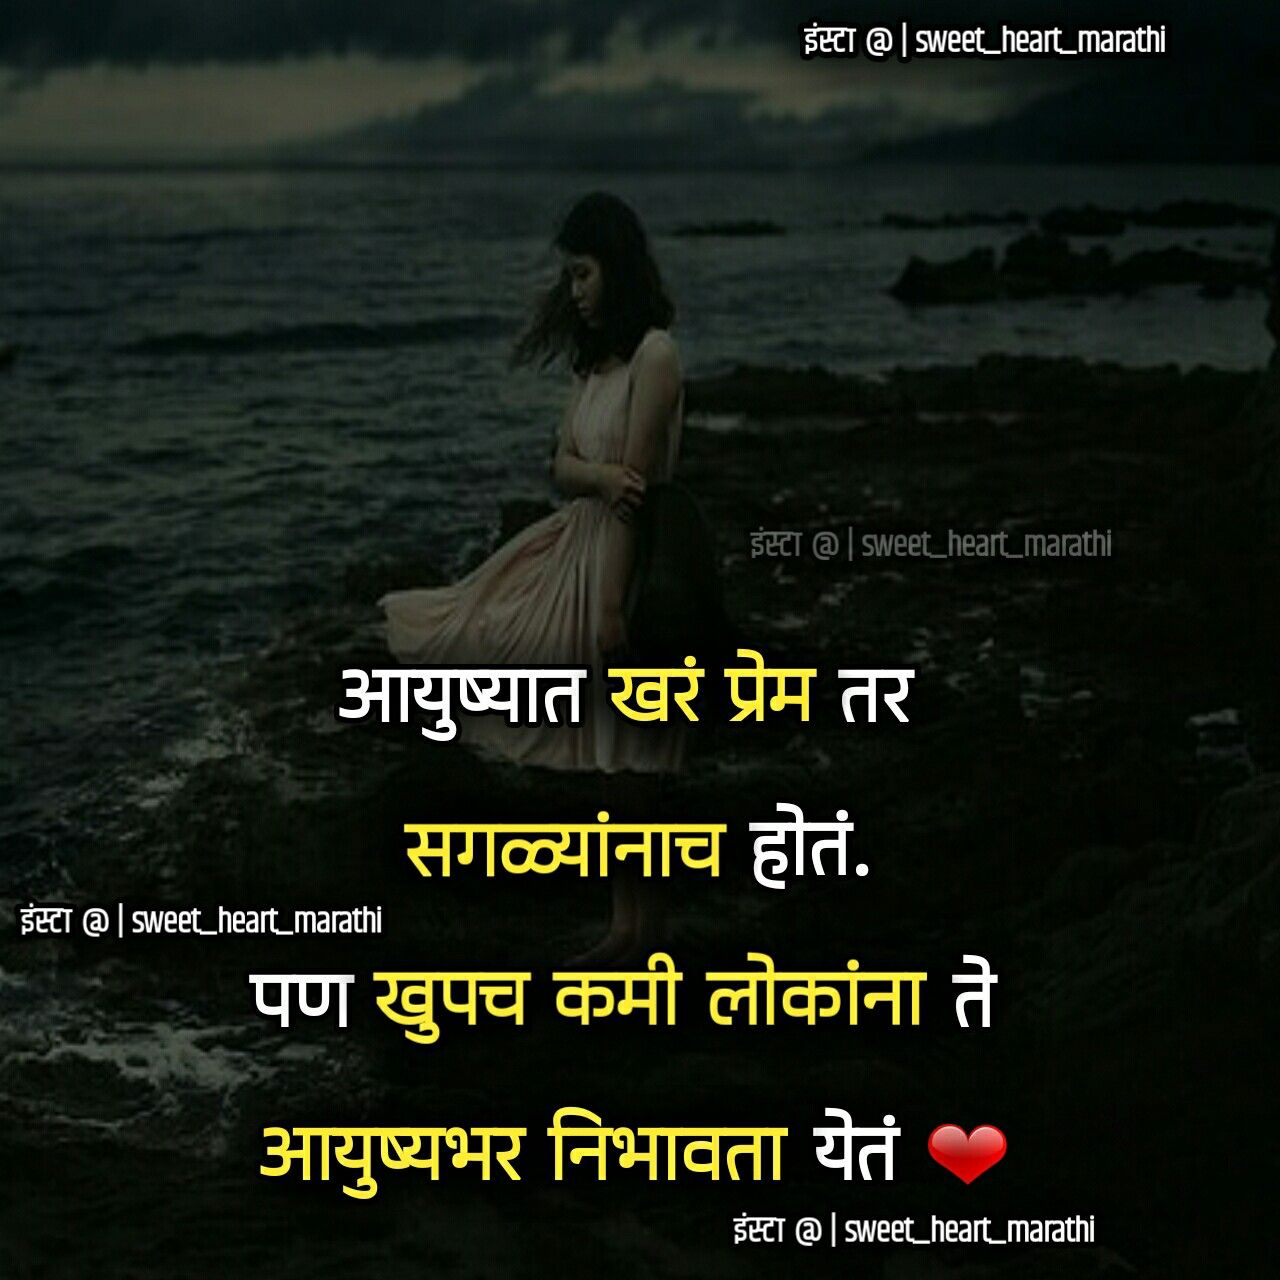 Relationship Heart Touching Sad Quotes In Marathi